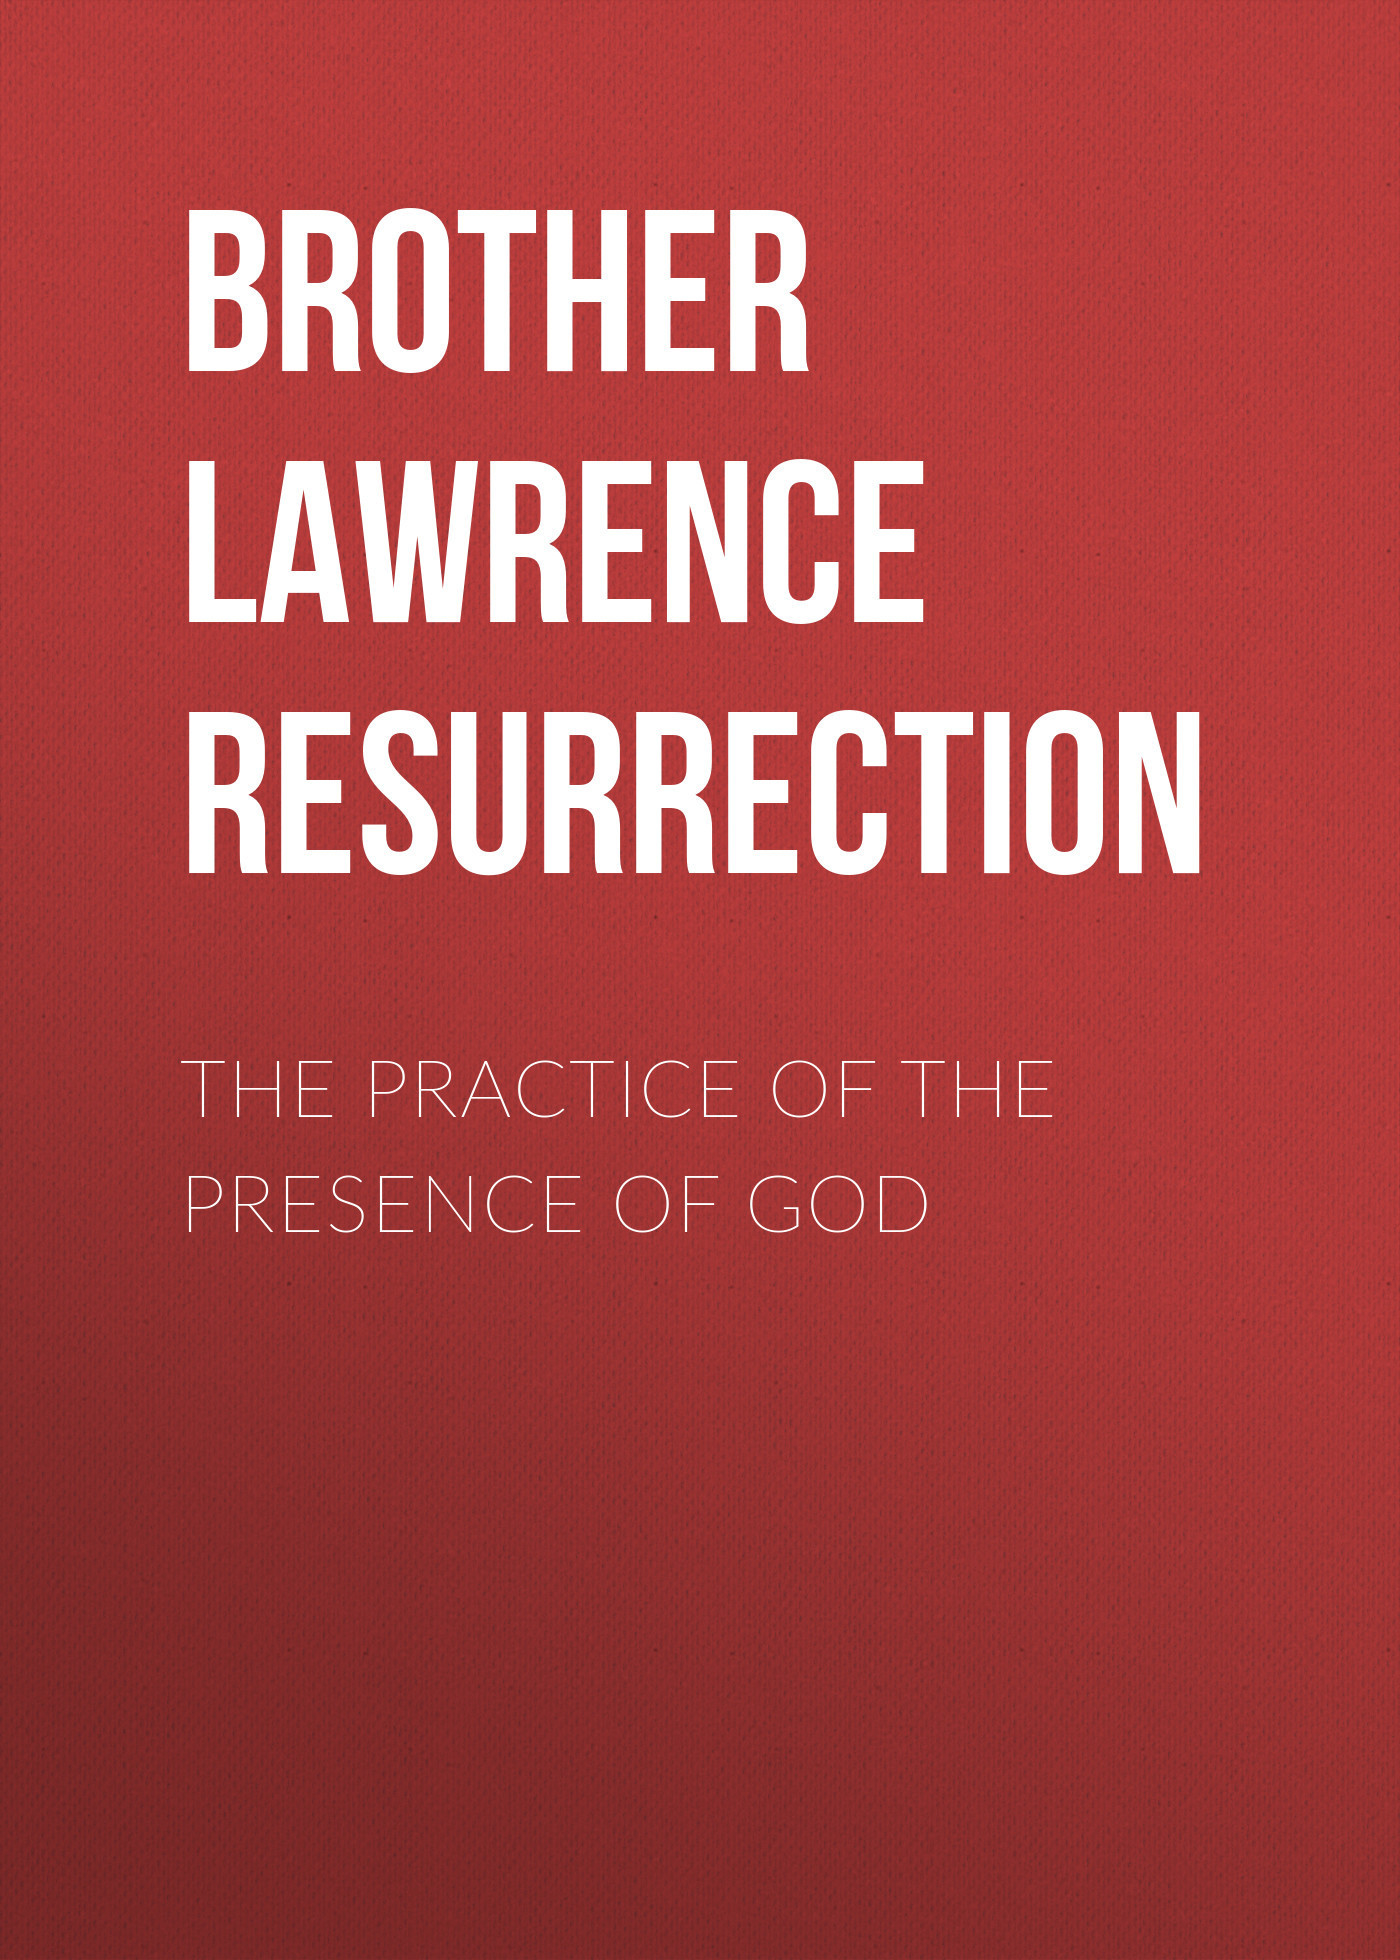 Brother Lawrence of the Resurrection The Practice of the Presence of God марк бойков 泰坦尼克之复活 возвращение титаника resurrection of titanic isbn 978 5 906916 00 6